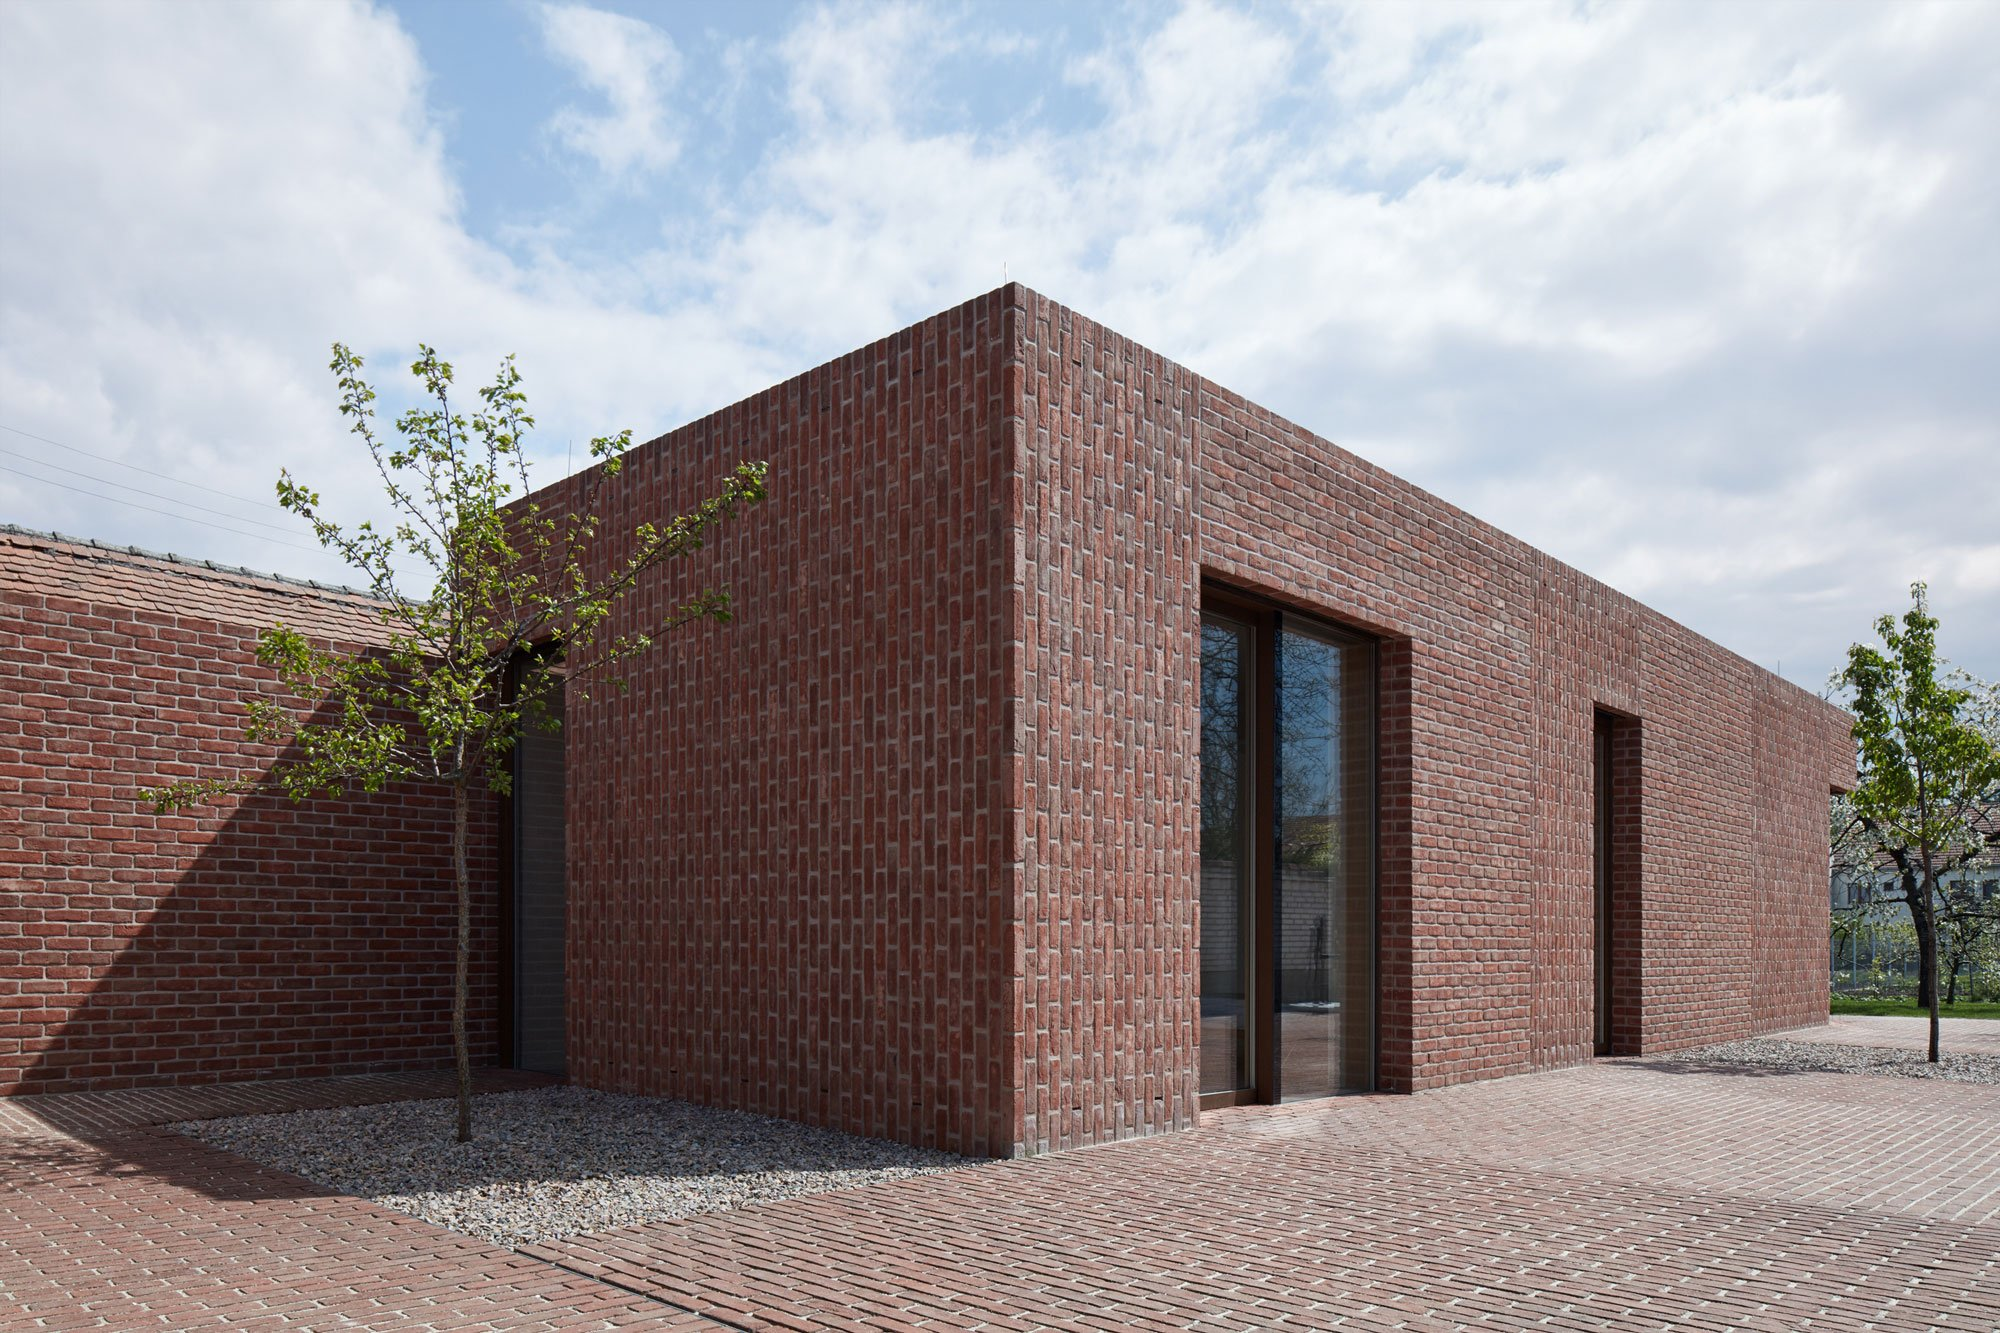 Brick House in Brick Garden on local movies, local storage, local market design, local pool, local heroes design, local art,